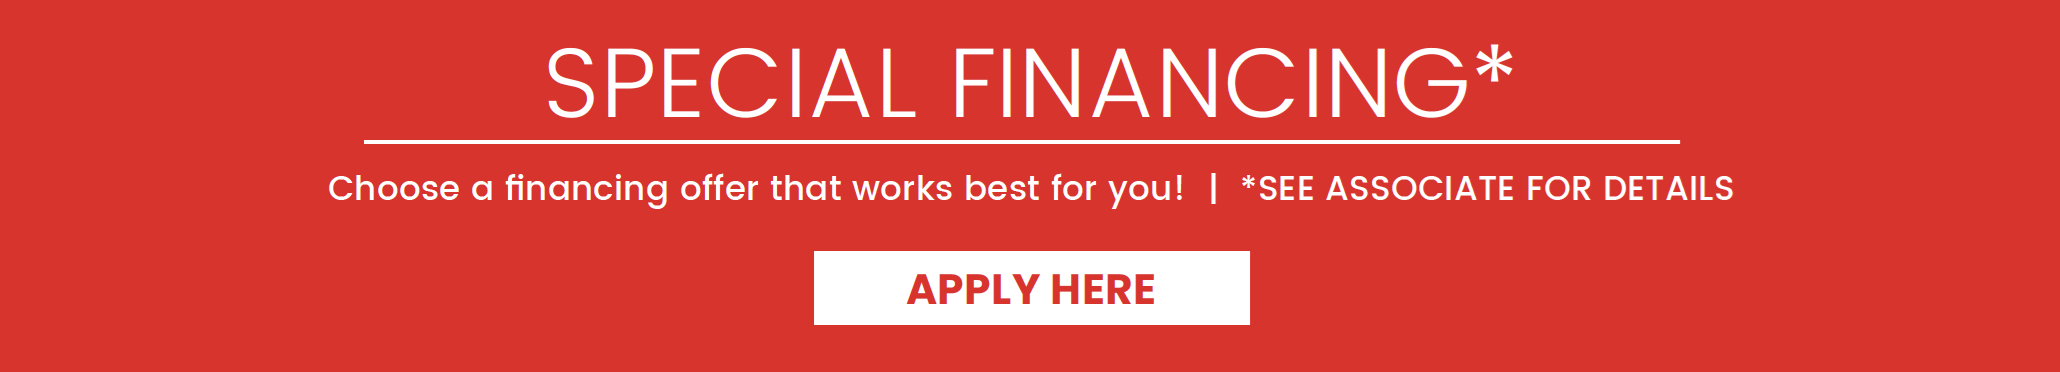 Special Financing* | Choose a financing offer that works best for you! | *See associate for details | Apply Here